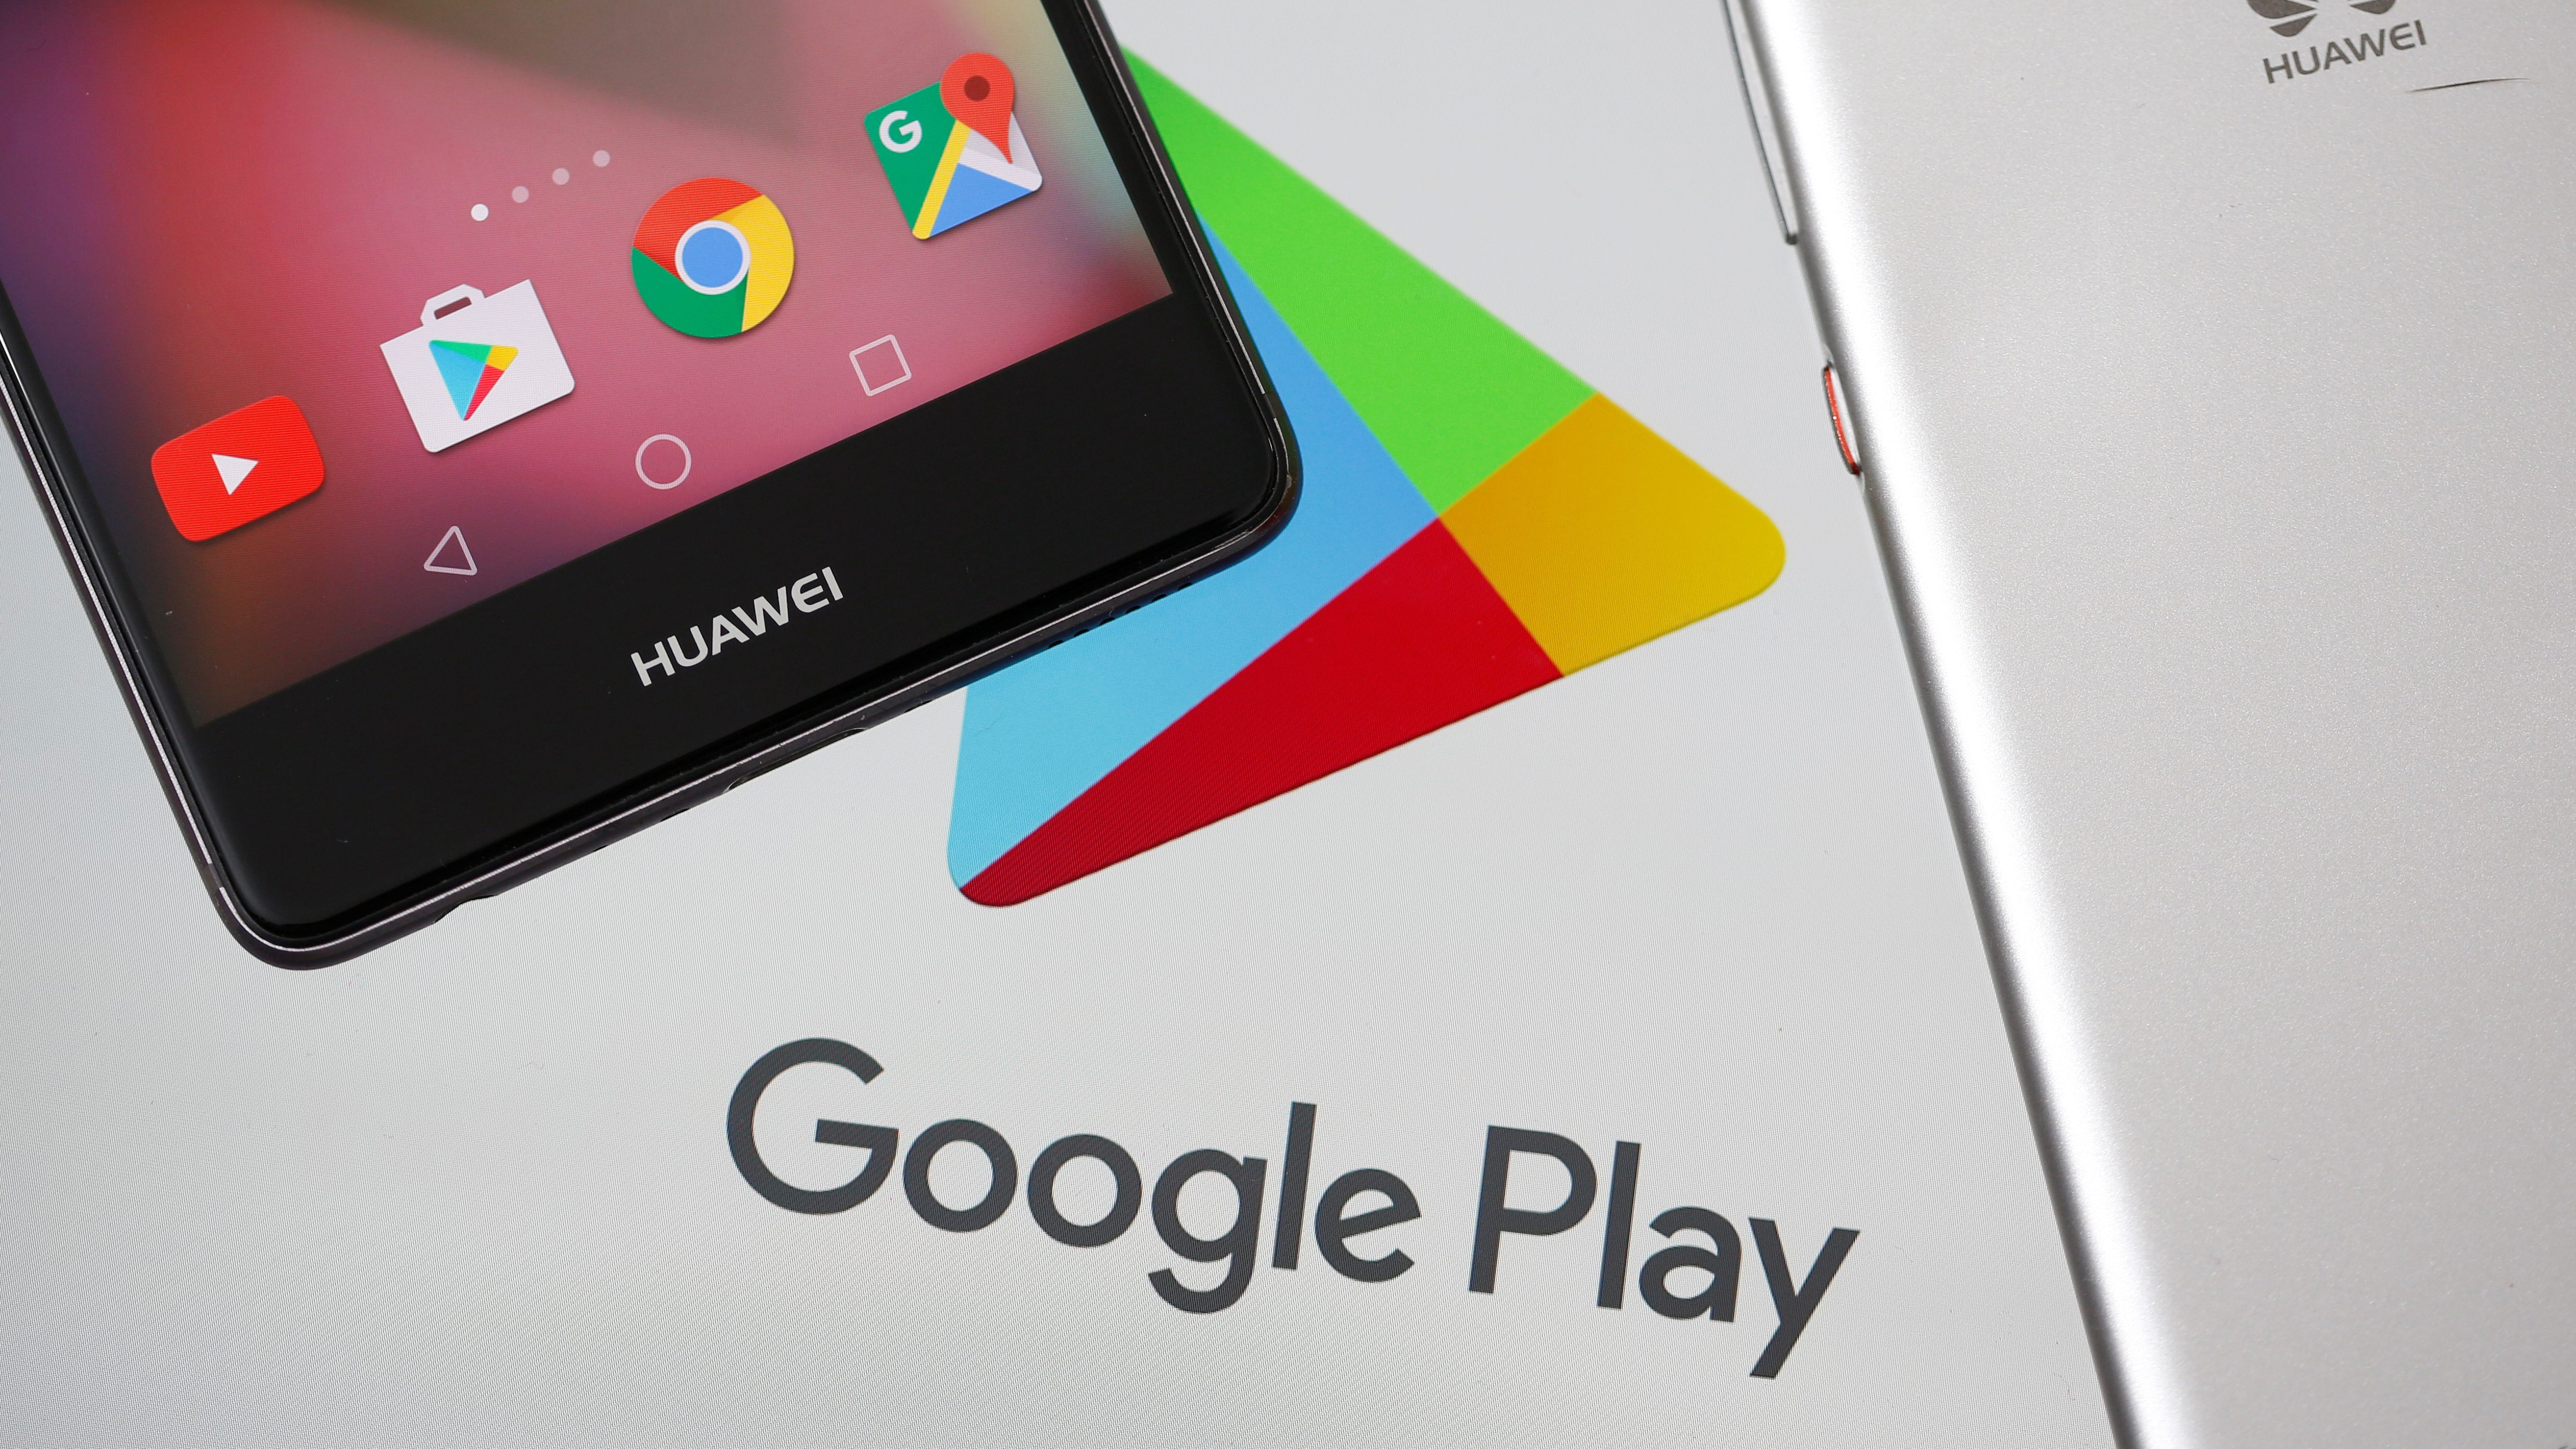 The Google Play logo by an Android smartphone